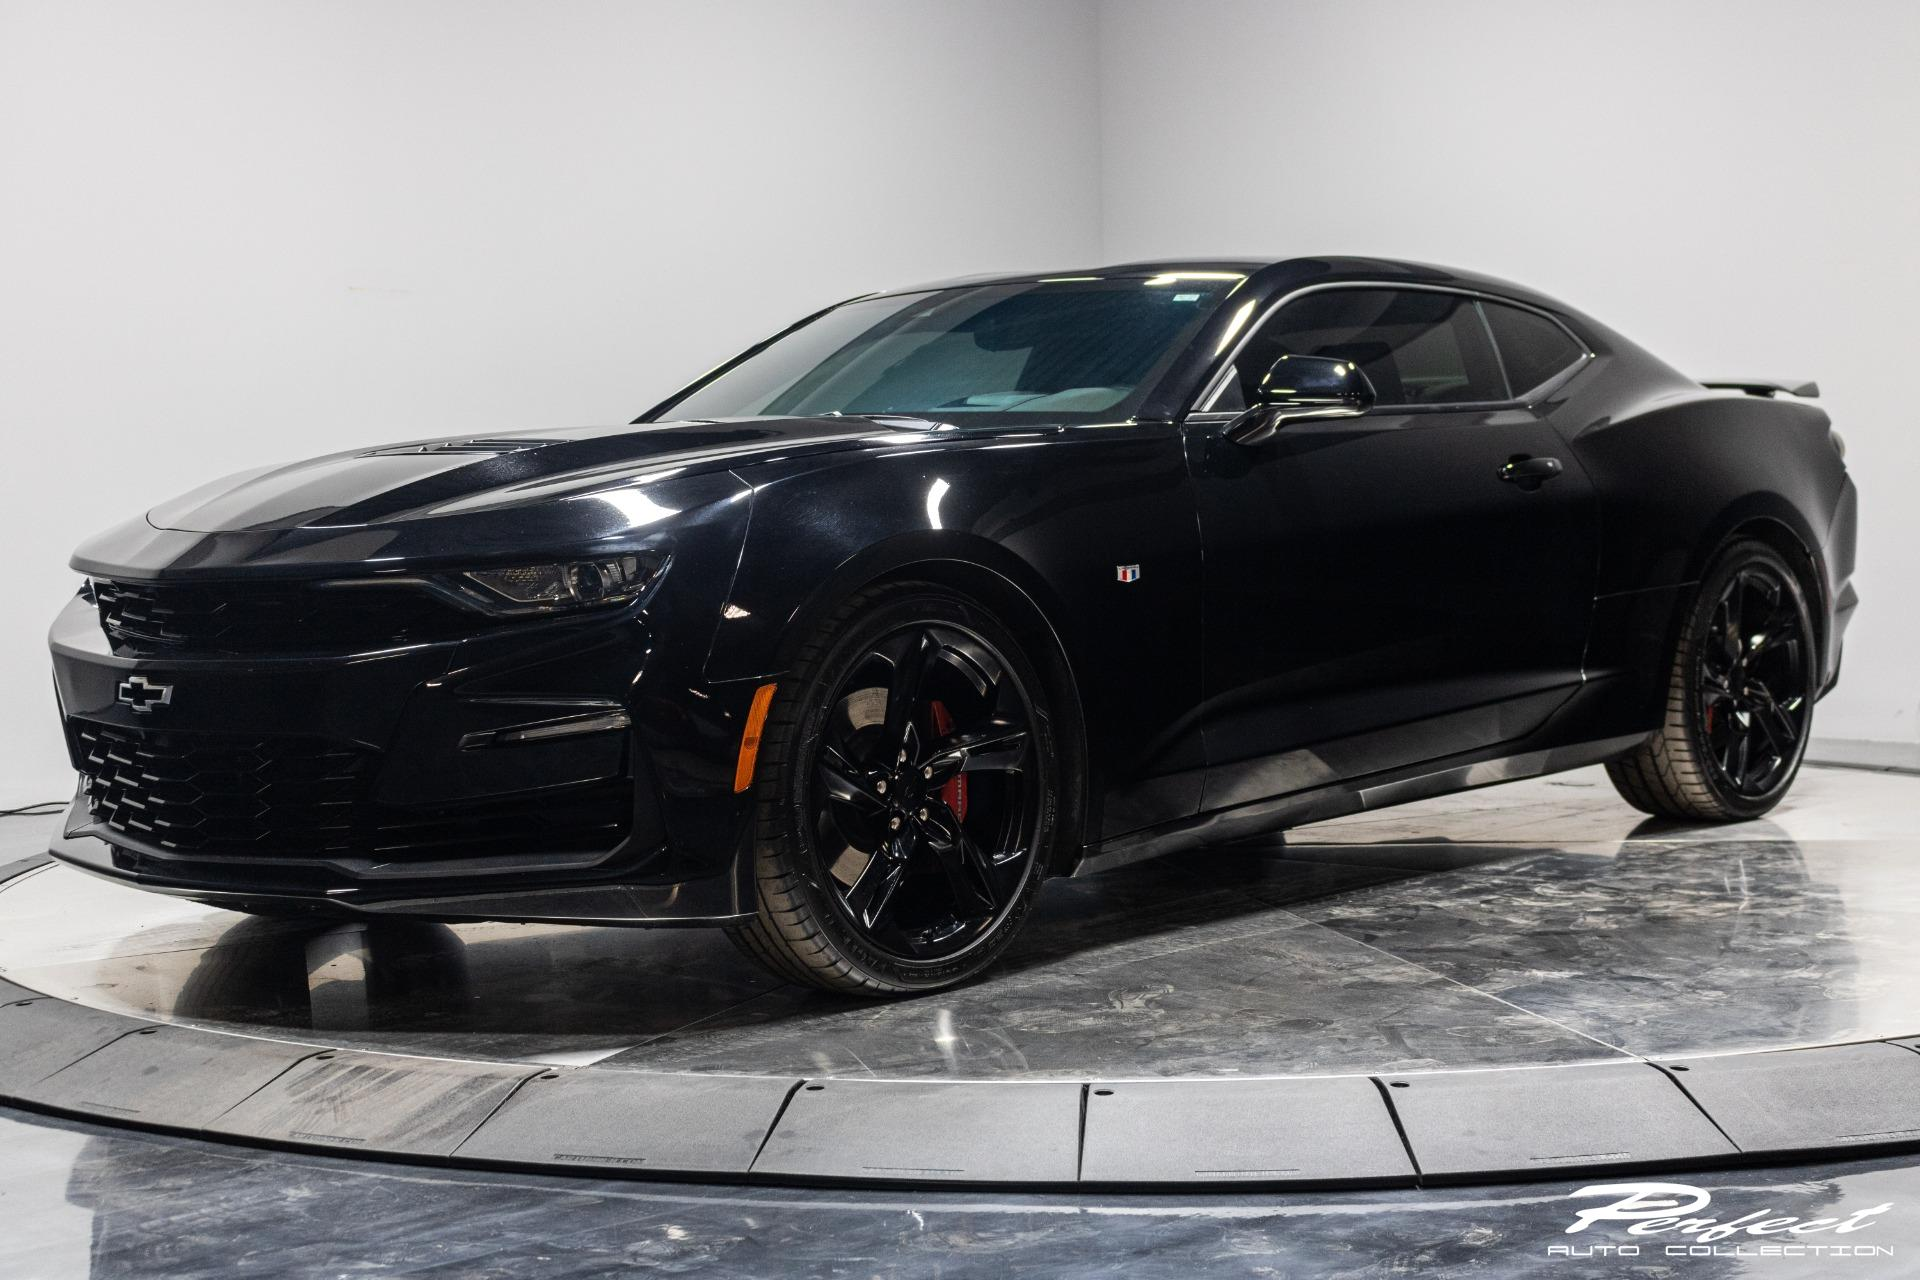 Used 2019 Chevrolet Camaro SS for sale $31,993 at Perfect Auto Collection in Akron OH 44310 1